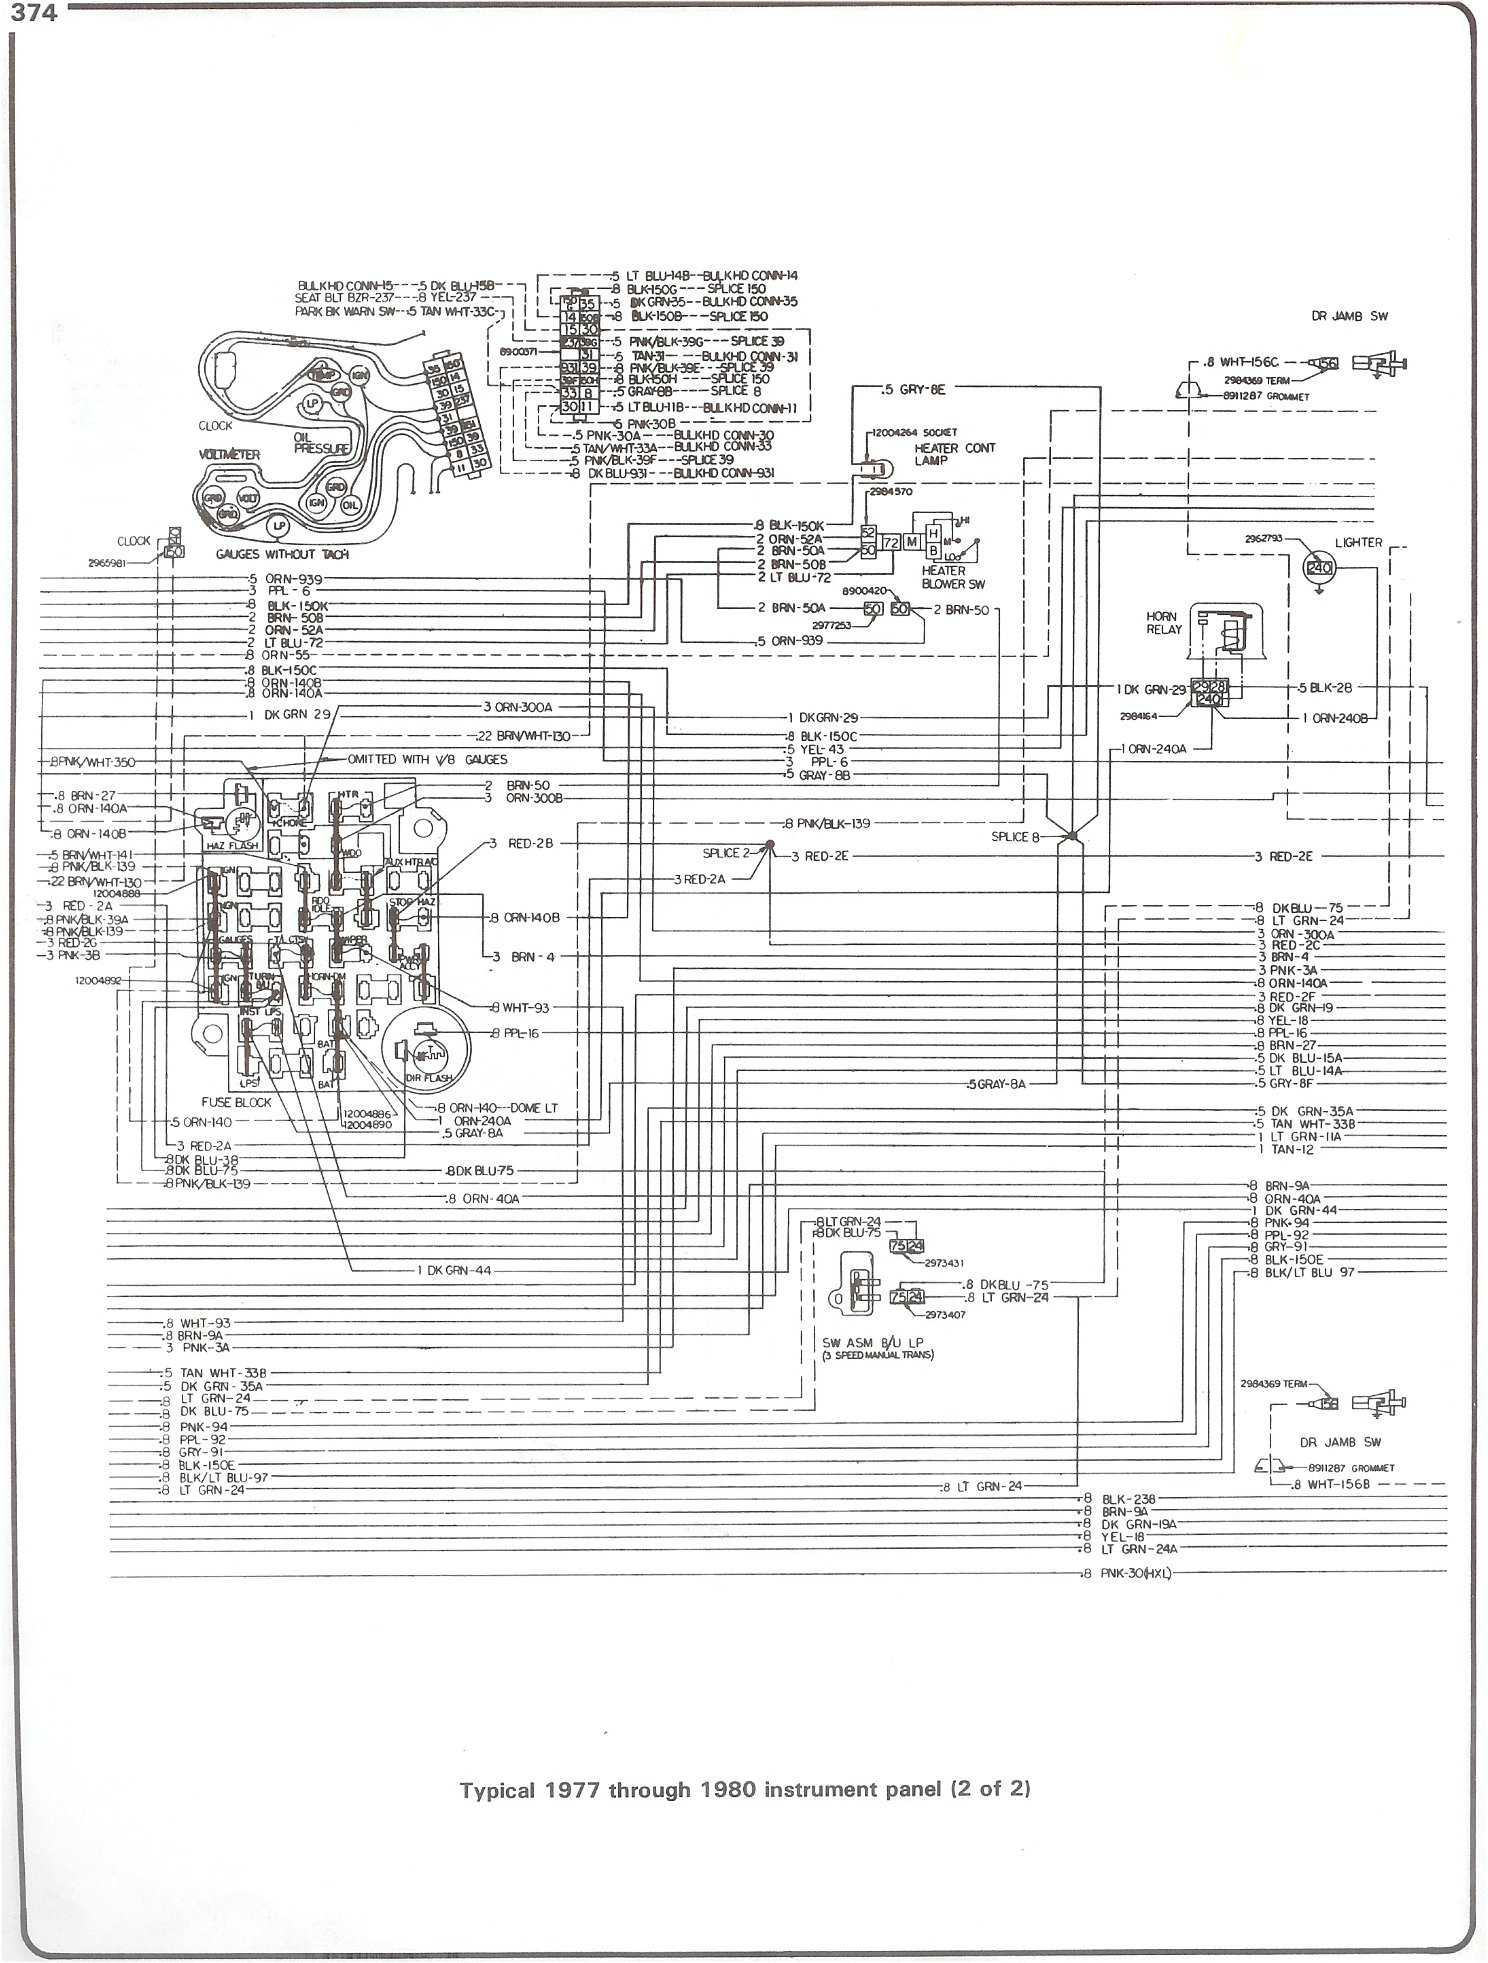 1979 gmc 7000 wiring schematic wiring library77 80 intrument panel page 2 complete 73 87 wiring diagrams